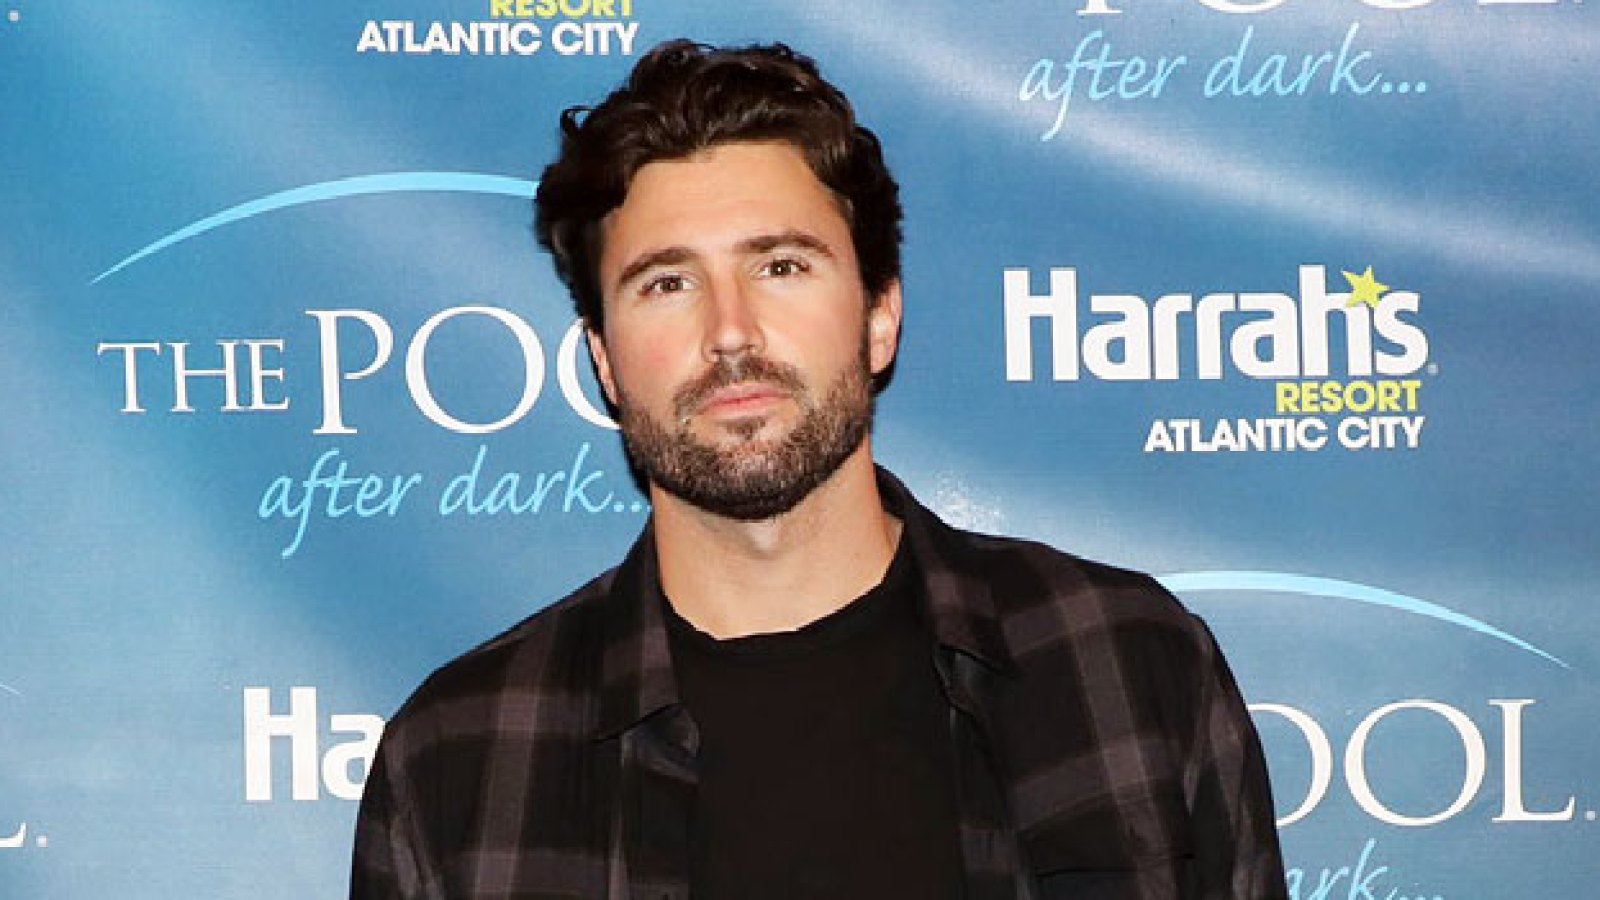 333d33b305 Brody Jenner Showed Off His Deejay Skills in Atlantic City